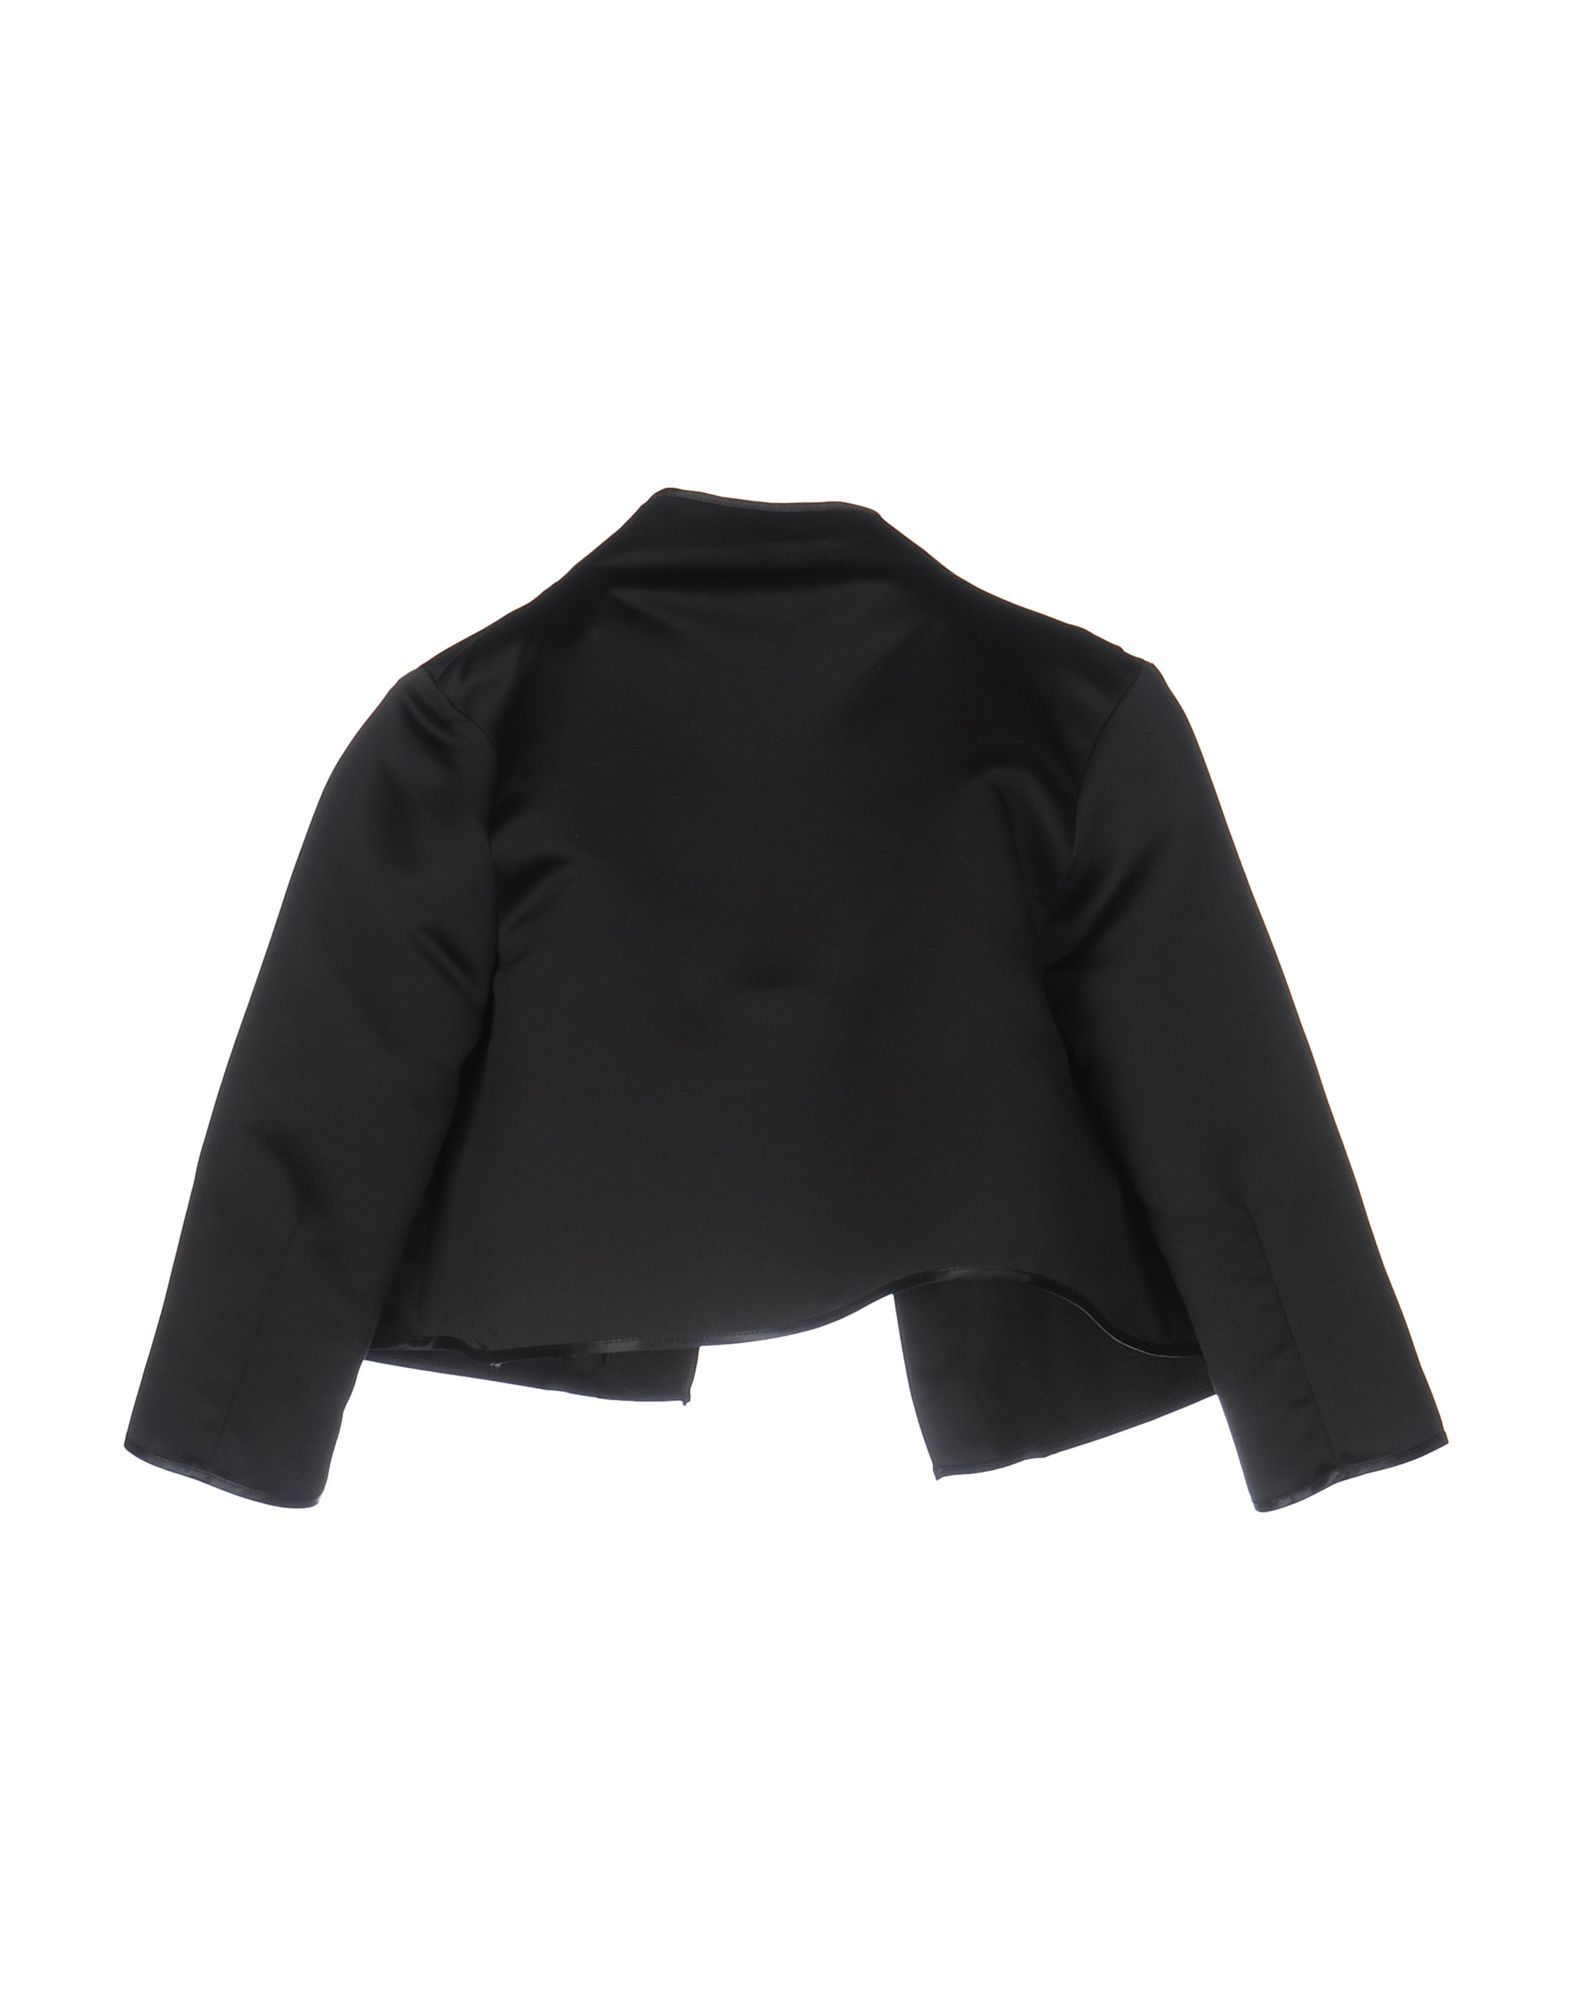 Suits And Jackets Nora Barth Black Women's Polyester